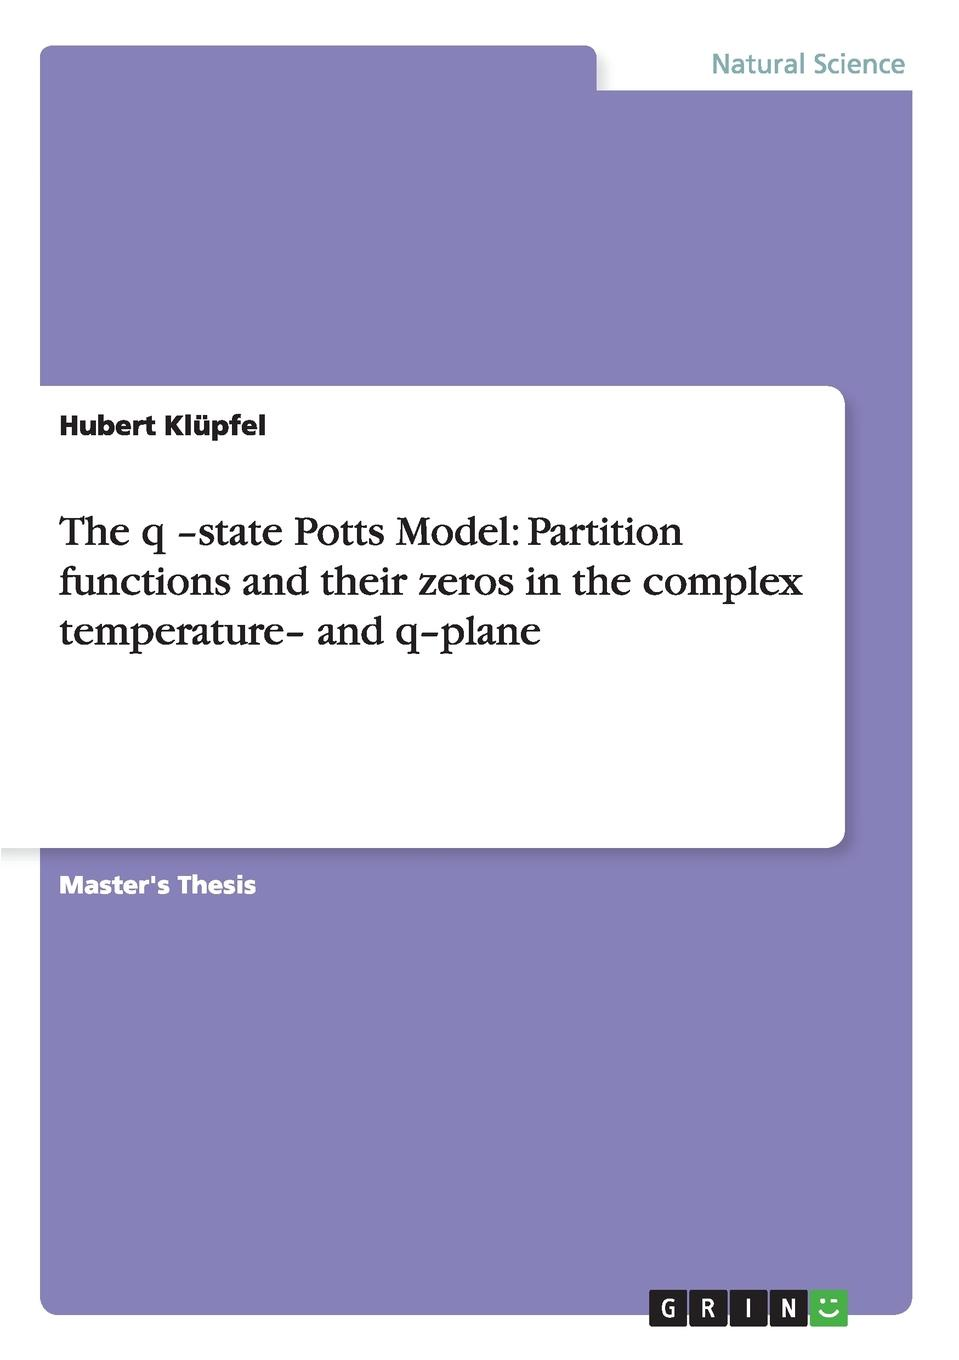 Hubert Klüpfel The q -state Potts Model. Partition functions and their zeros in the complex temperature- q-plane